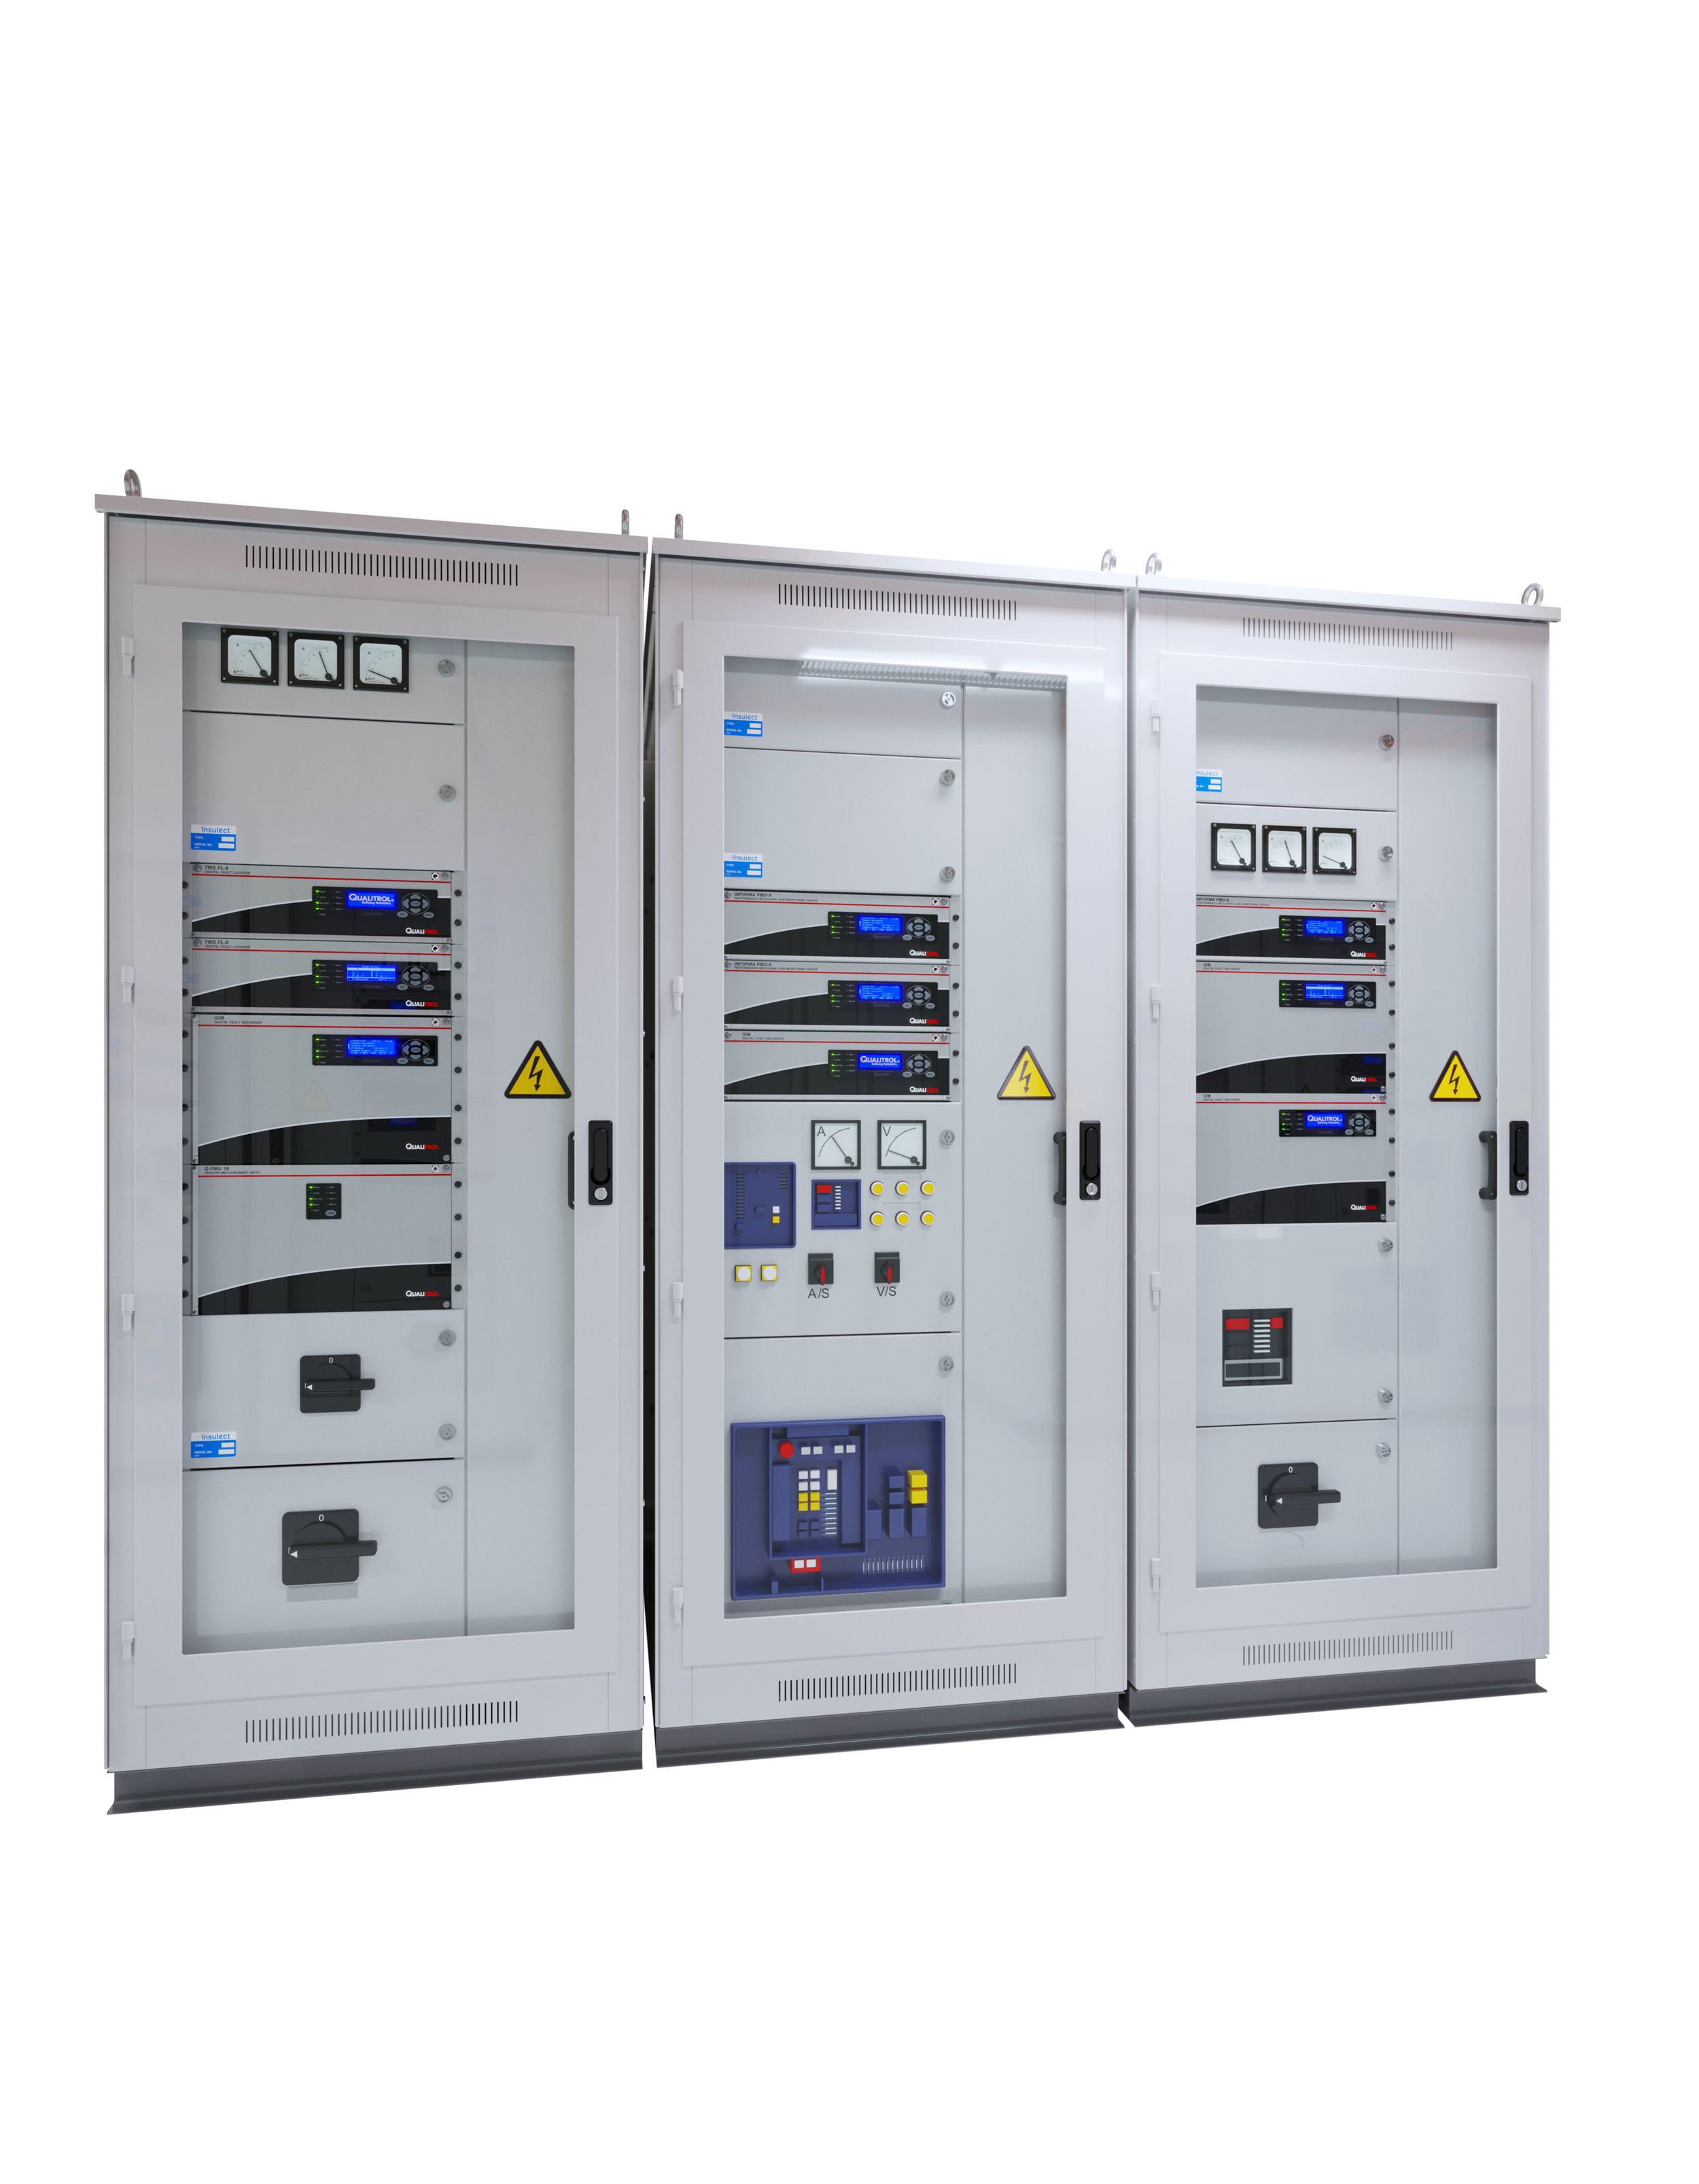 insulect-power-system-monitoring-services-panel.jpg